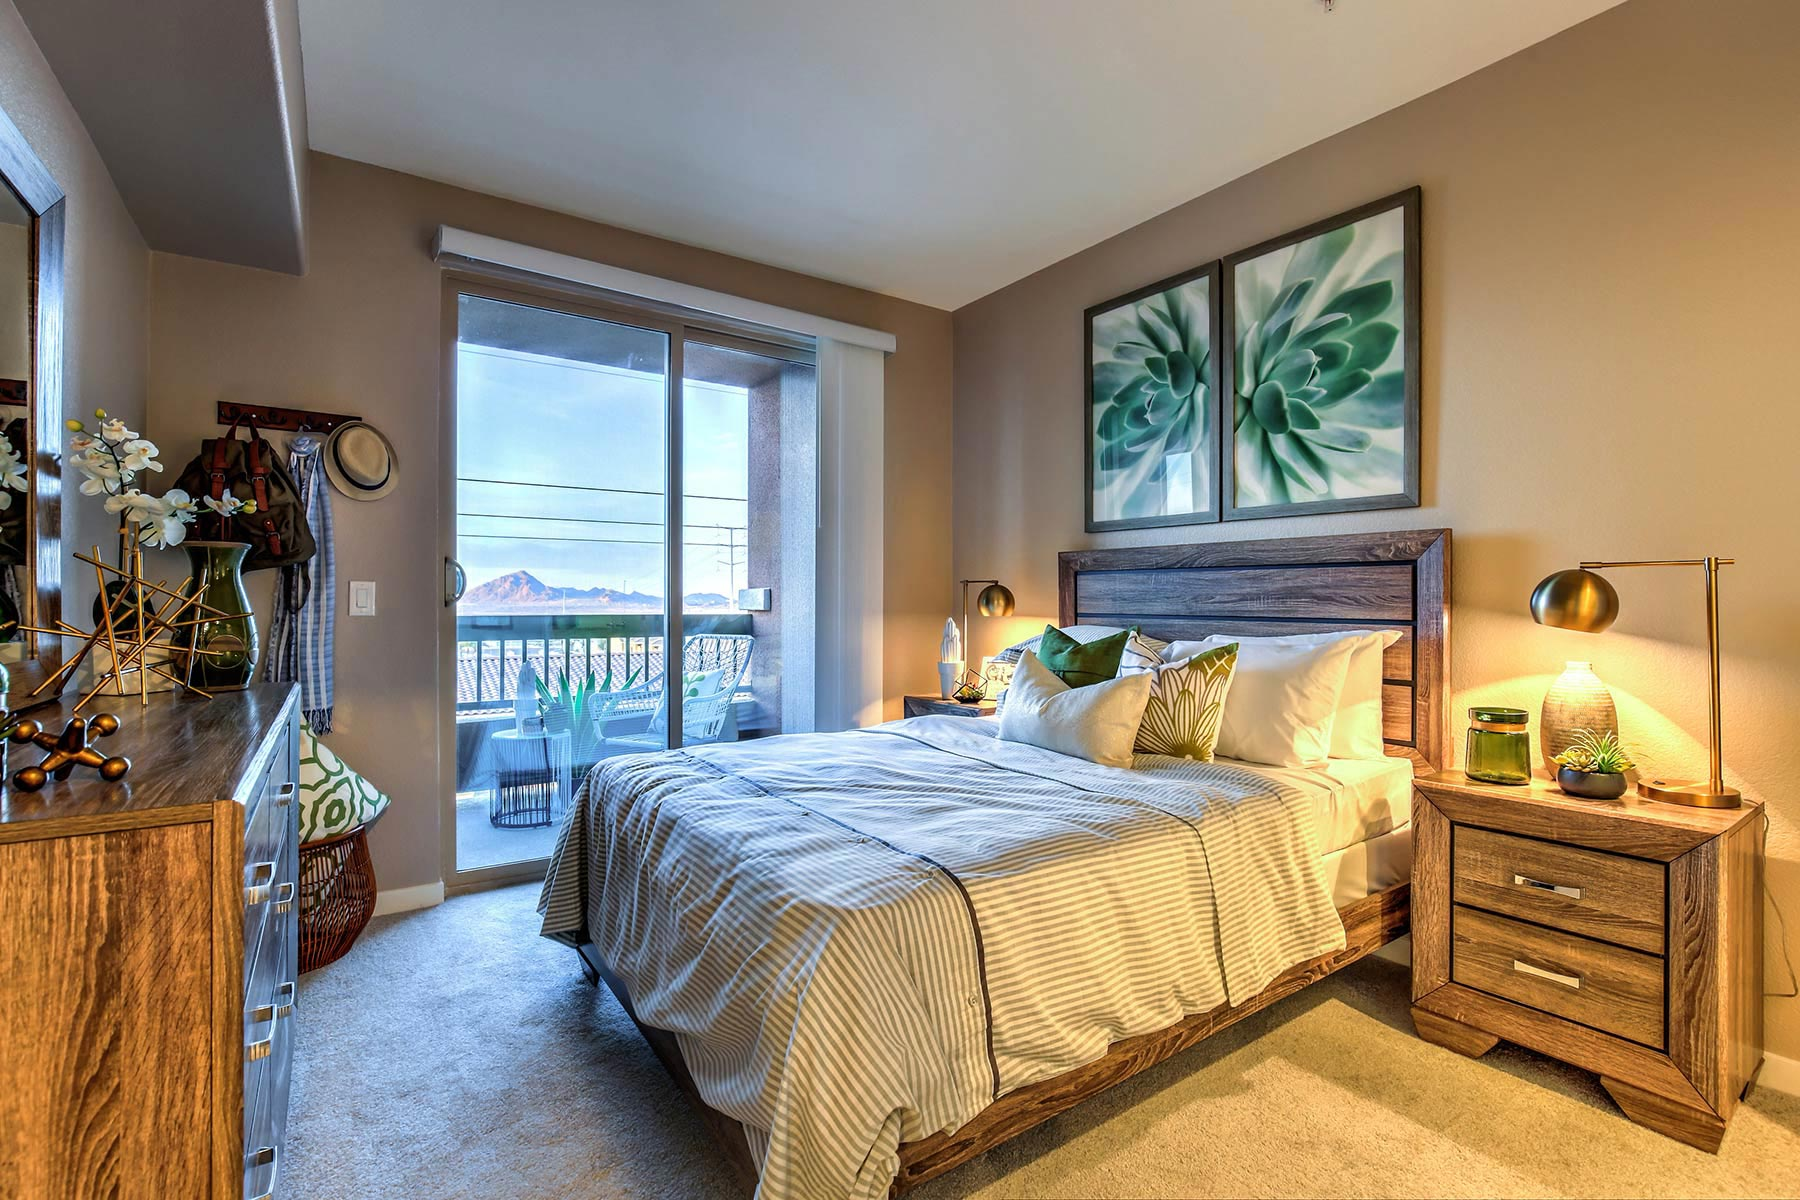 Carpeted bedroom with high ceilings. Sliding glass doors lead to the private patio/balcony with mountain views.